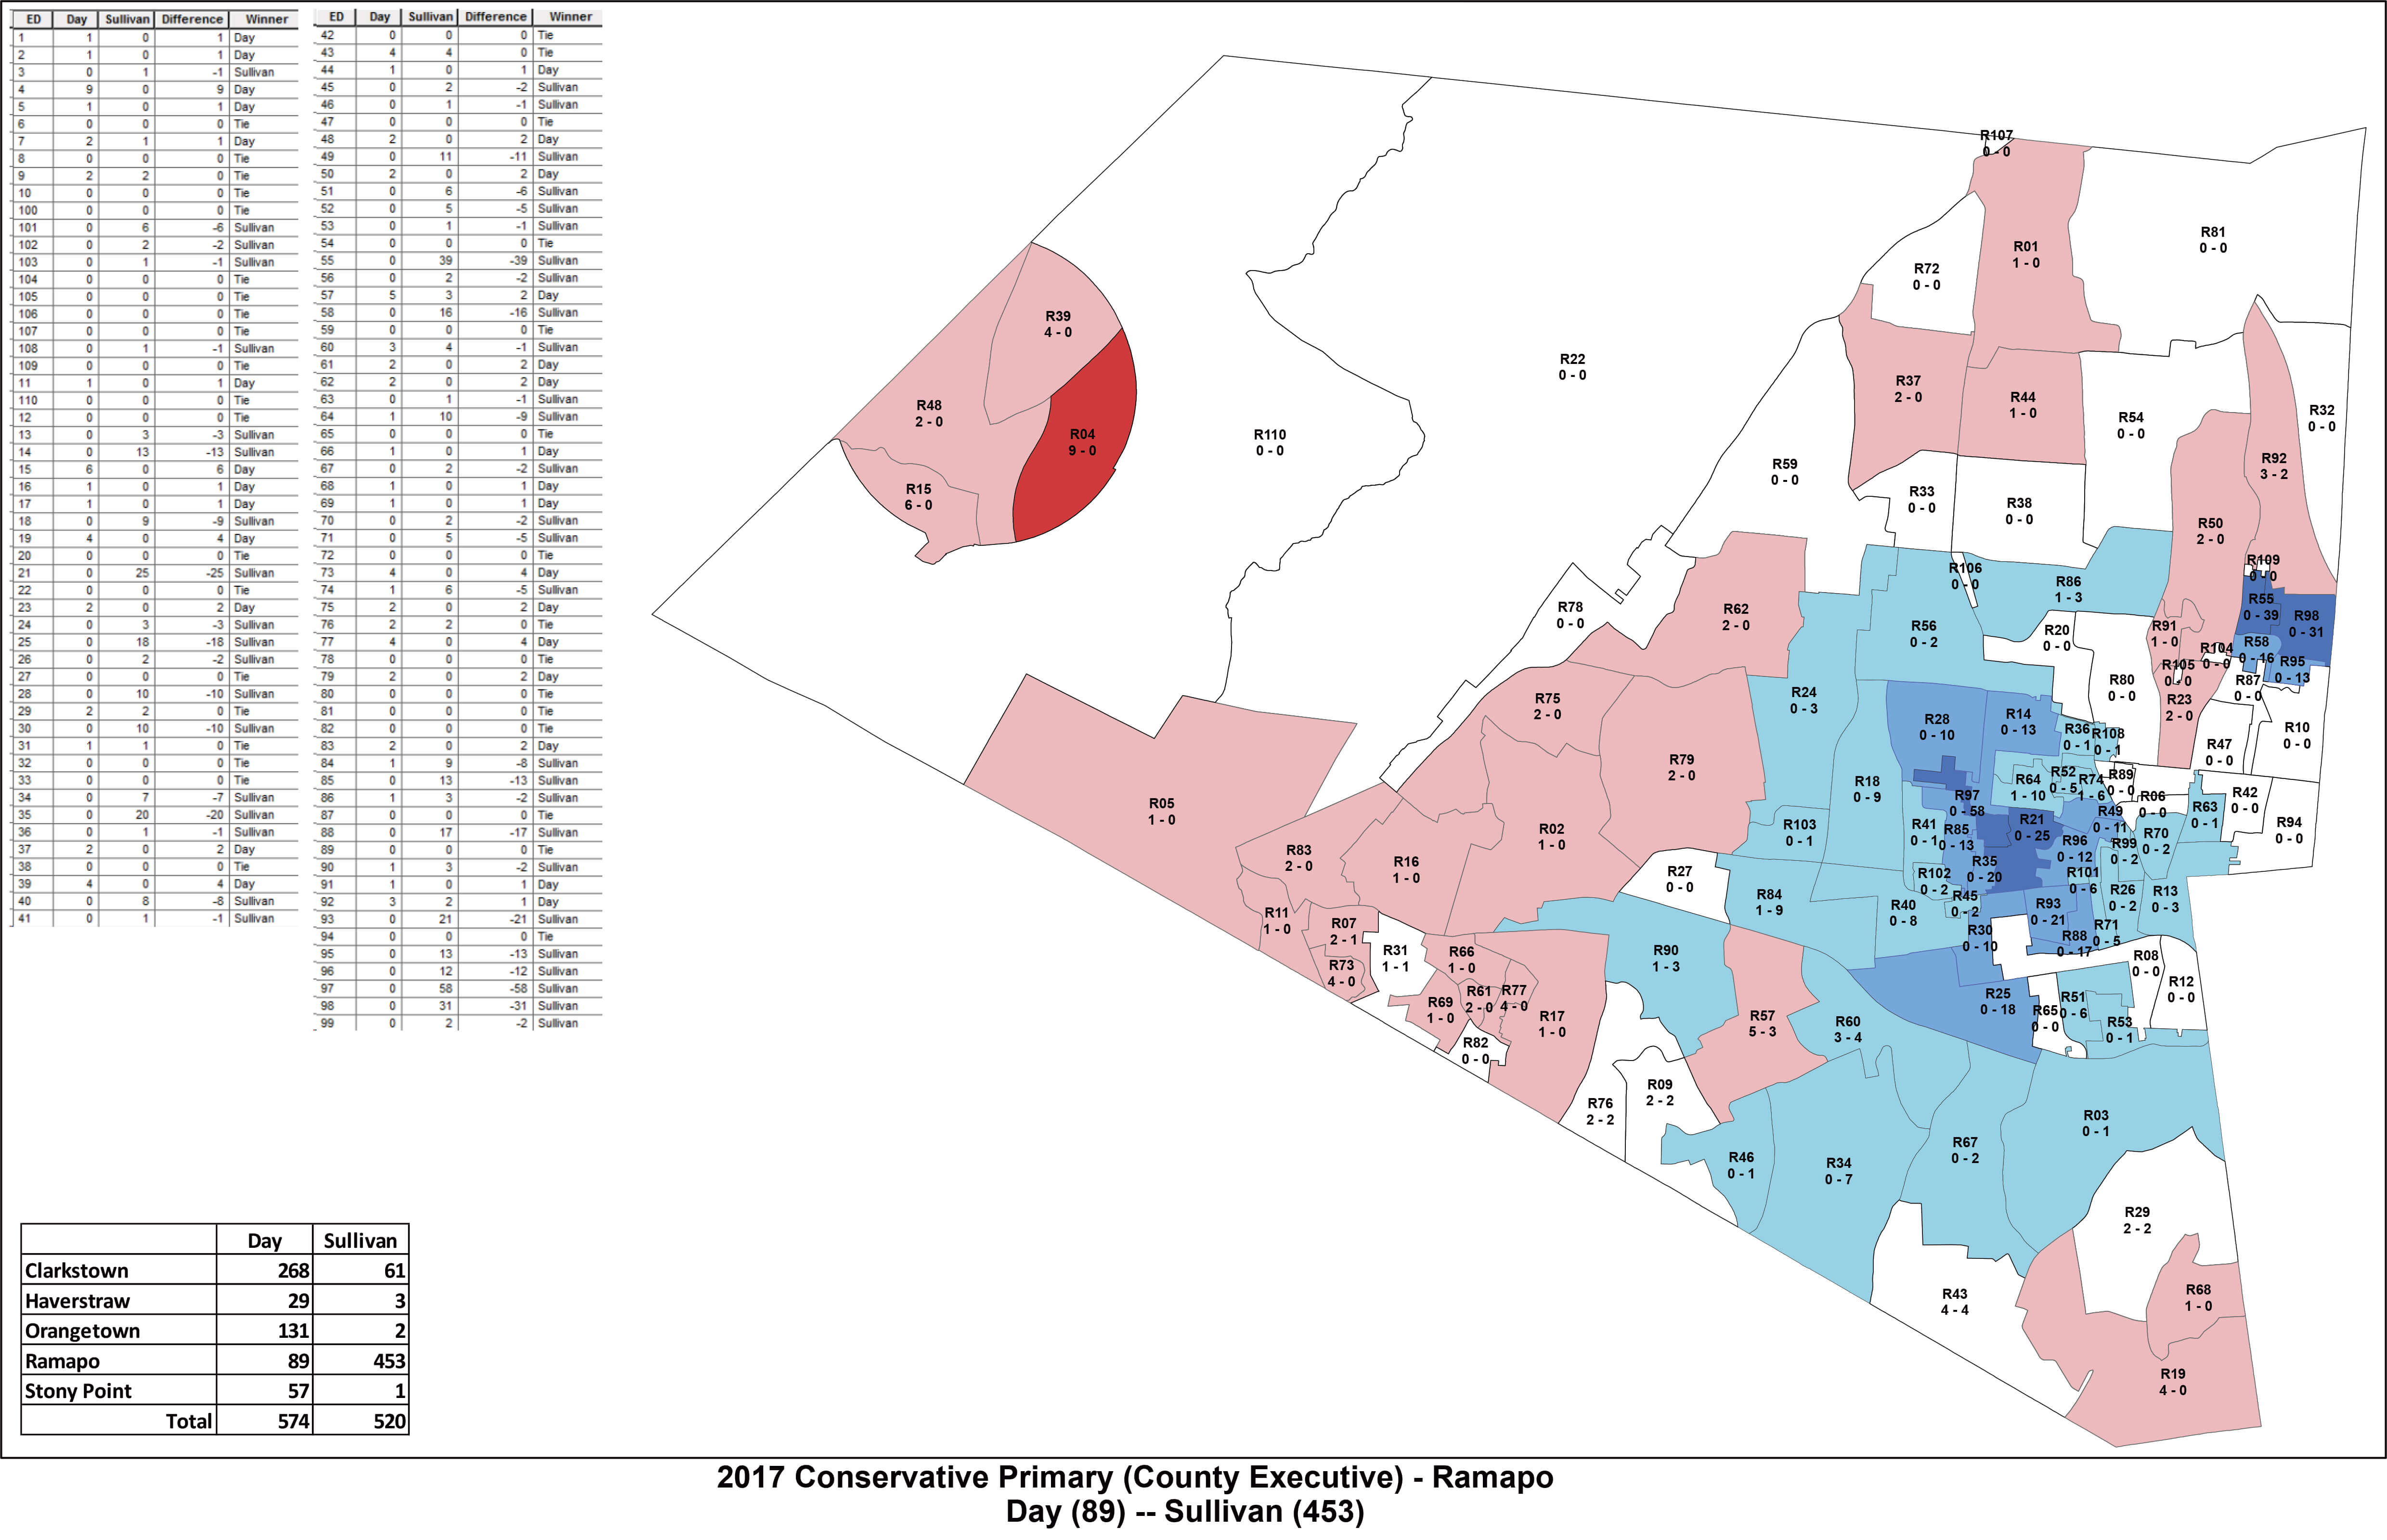 DISTRICT MAPS SHOW: Regardless of party, Rockland County elections are about Ramapo bloc vote